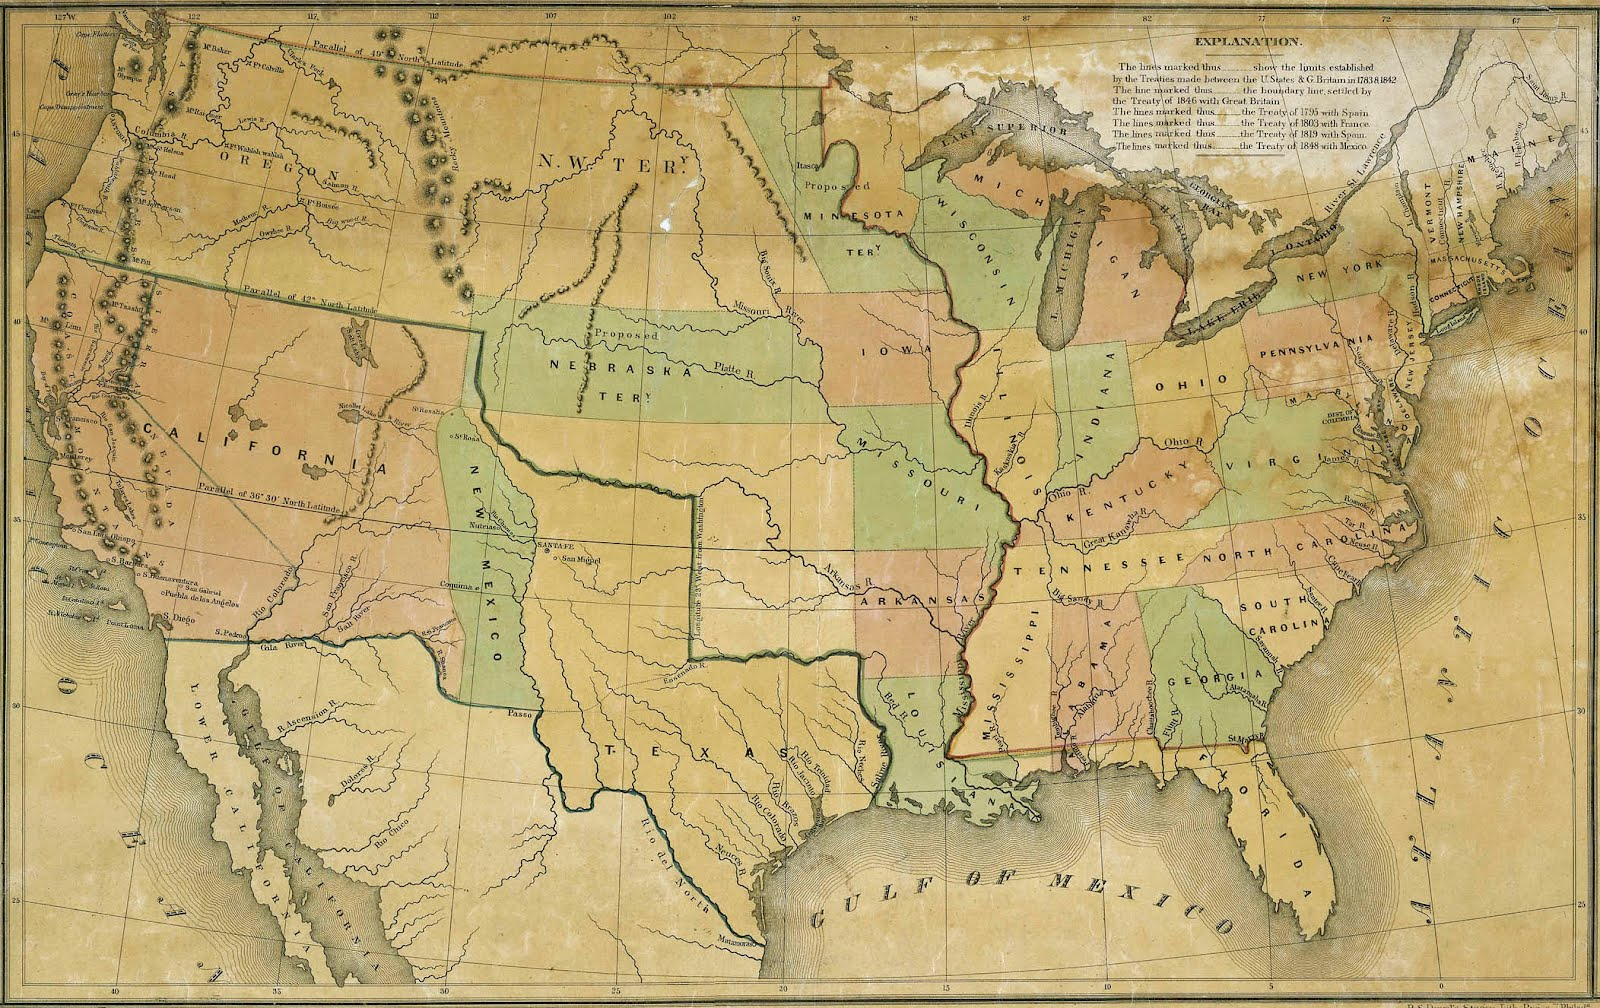 Map Of Texas 1840.Antique Prints Blog Shaping The Trans Mississippi West 1840 1849